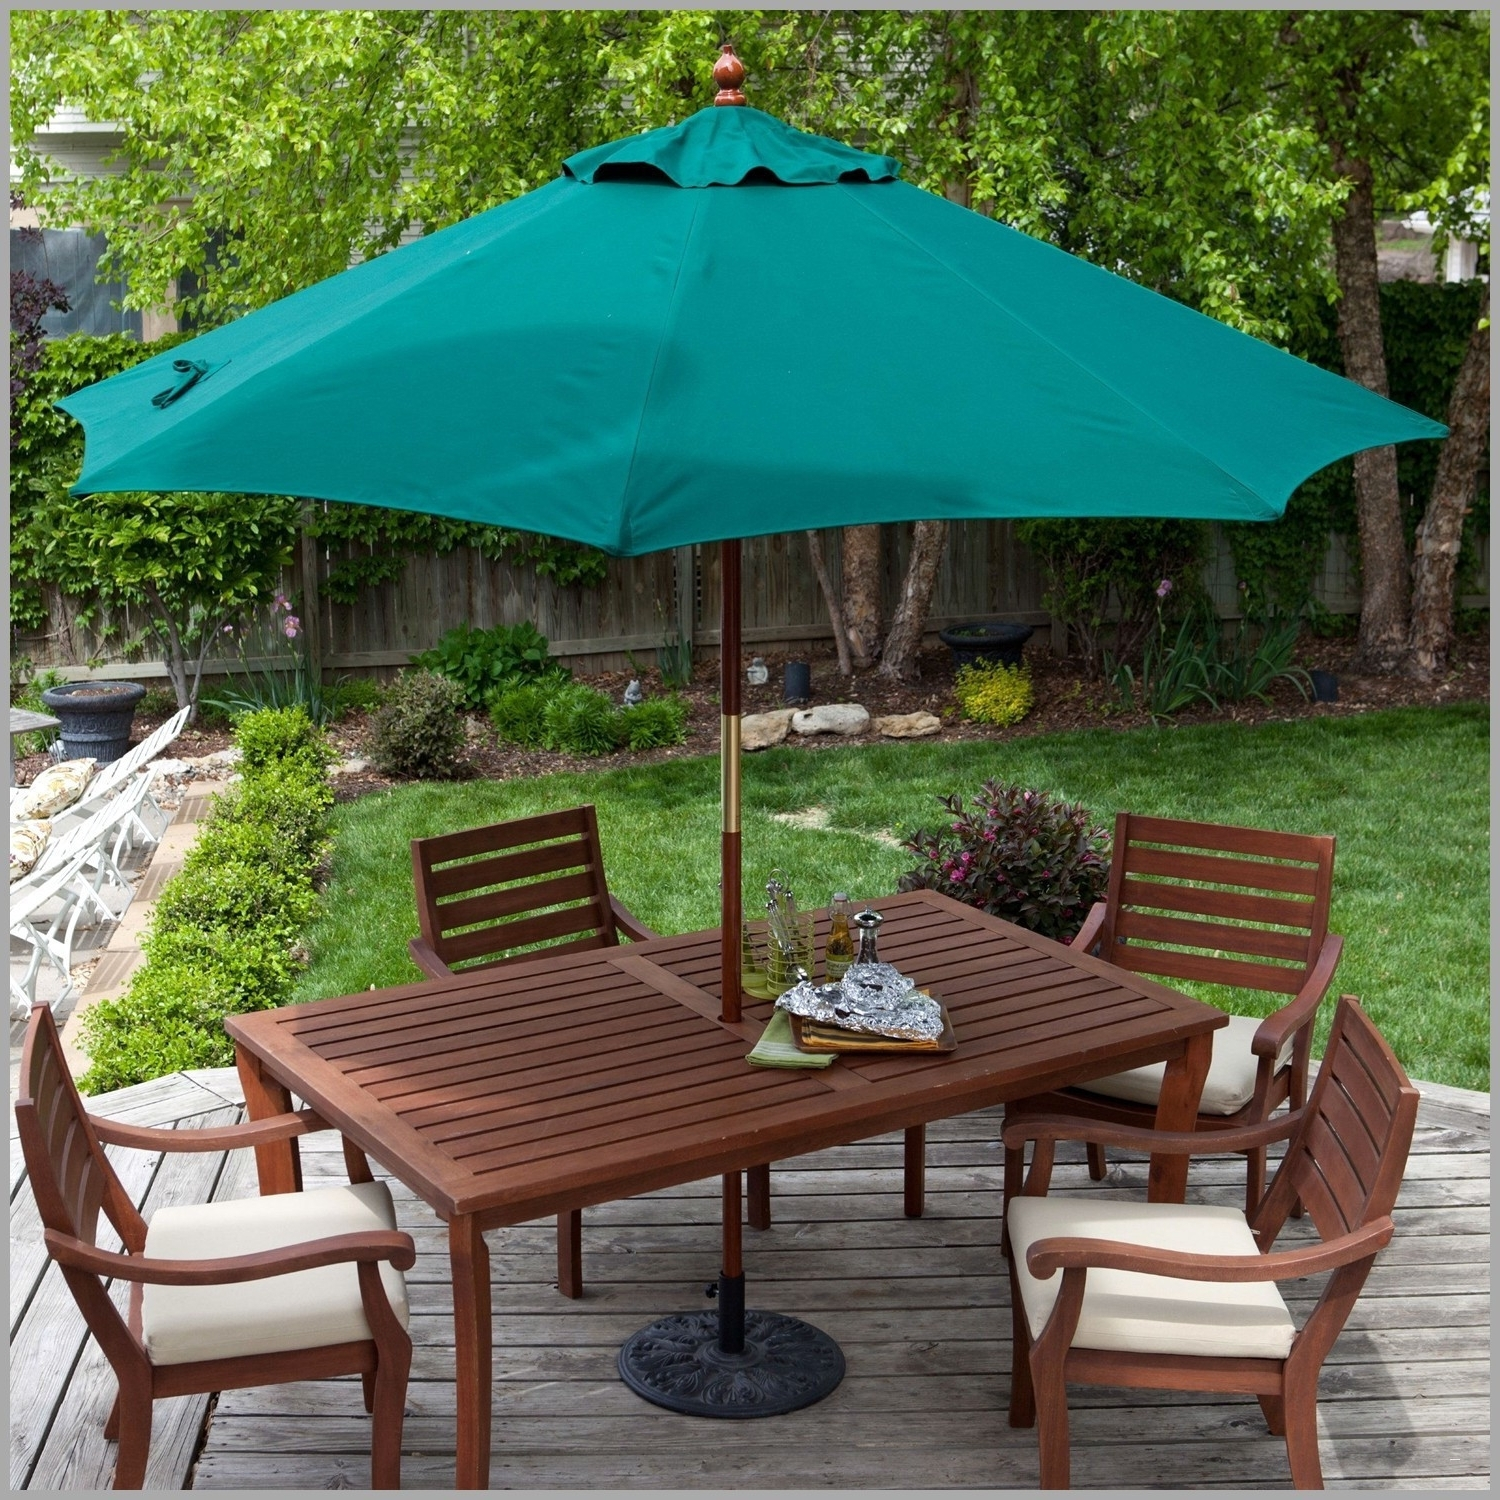 Dadisinthehouse In Wayfair Patio Umbrellas (View 3 of 20)